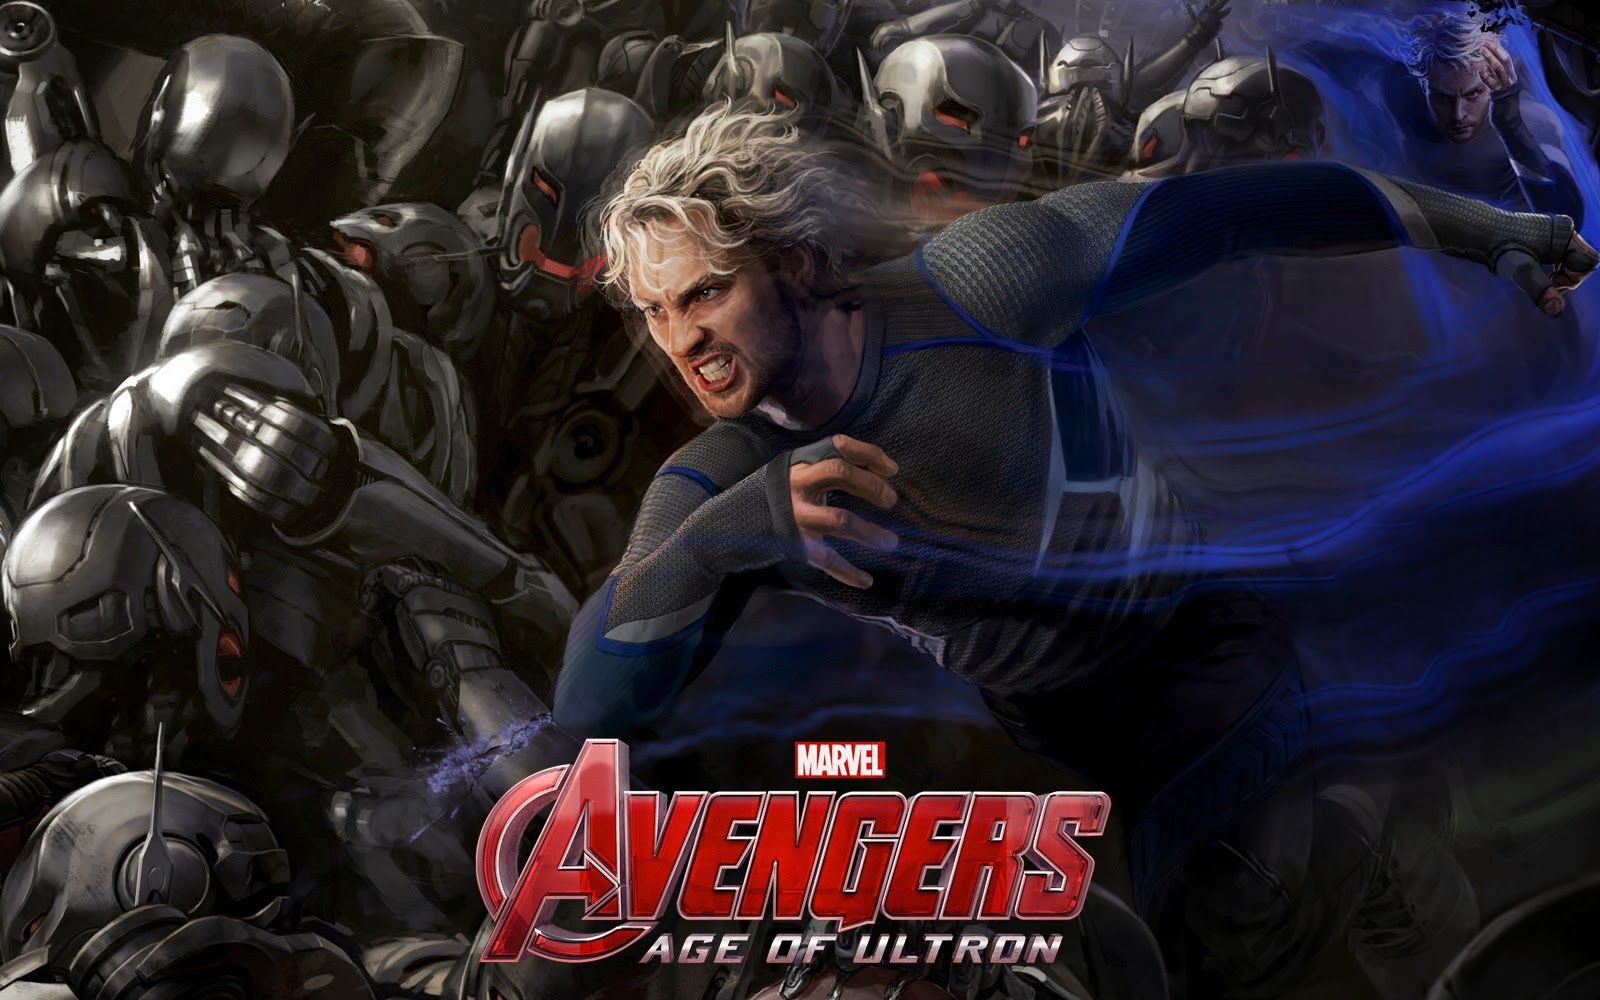 Radio Wallpaper Hd Avengers Age Of Ultron 2015 Wallpaper Kfzoom